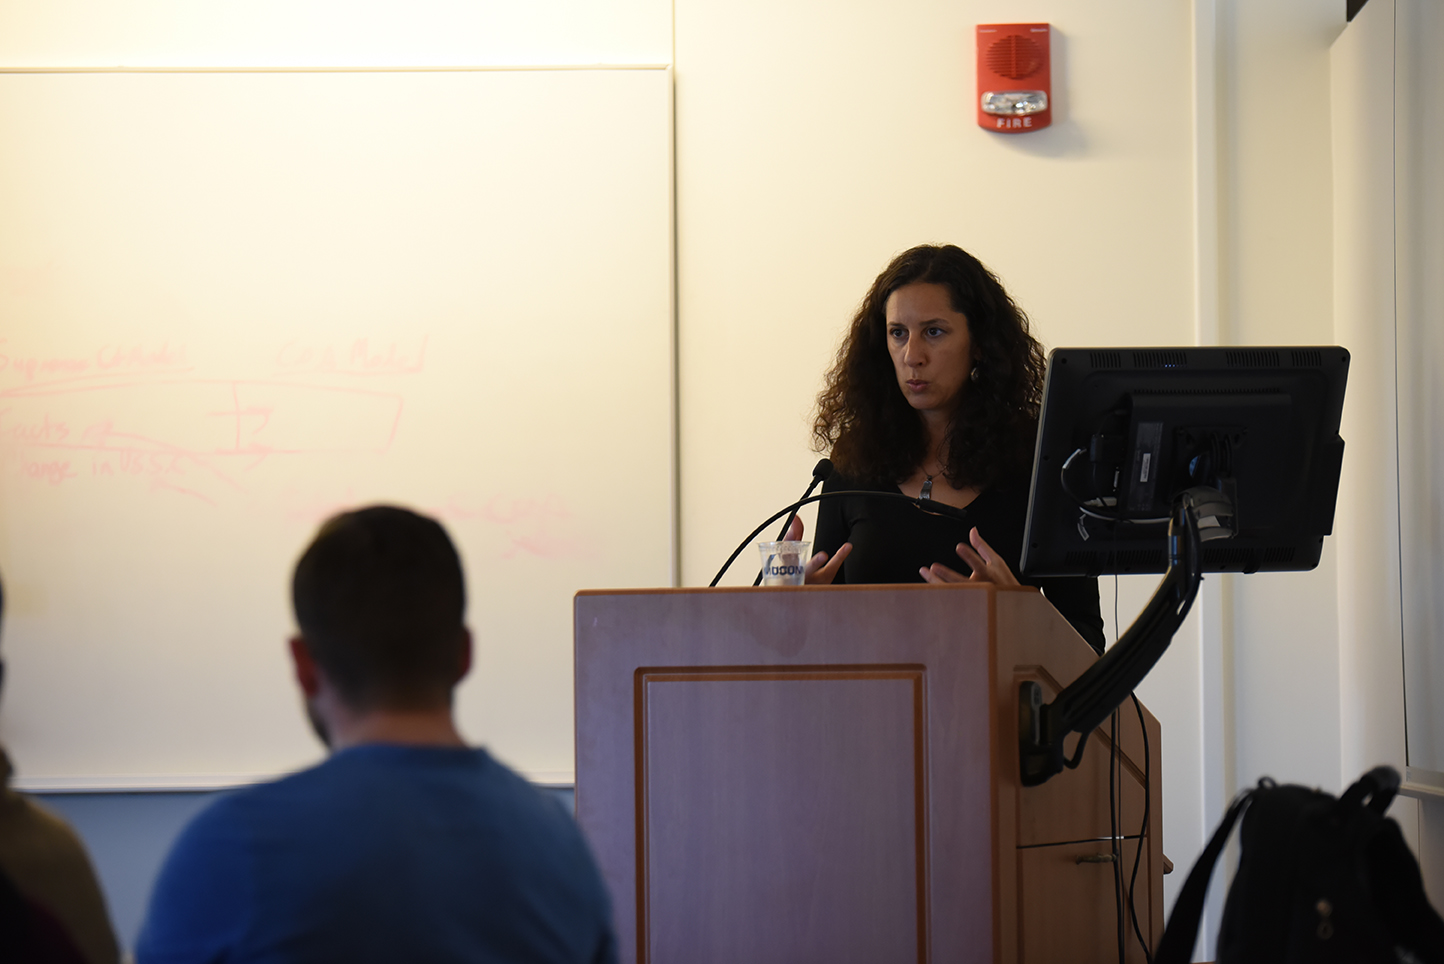 Nadje Al-Ali, the gender studies professor of the University of London is giving a presentation on her recent research on peace and gender in Turkey on Thursday April 14, 2016.(Zhelun Lang/The Daily Campus)